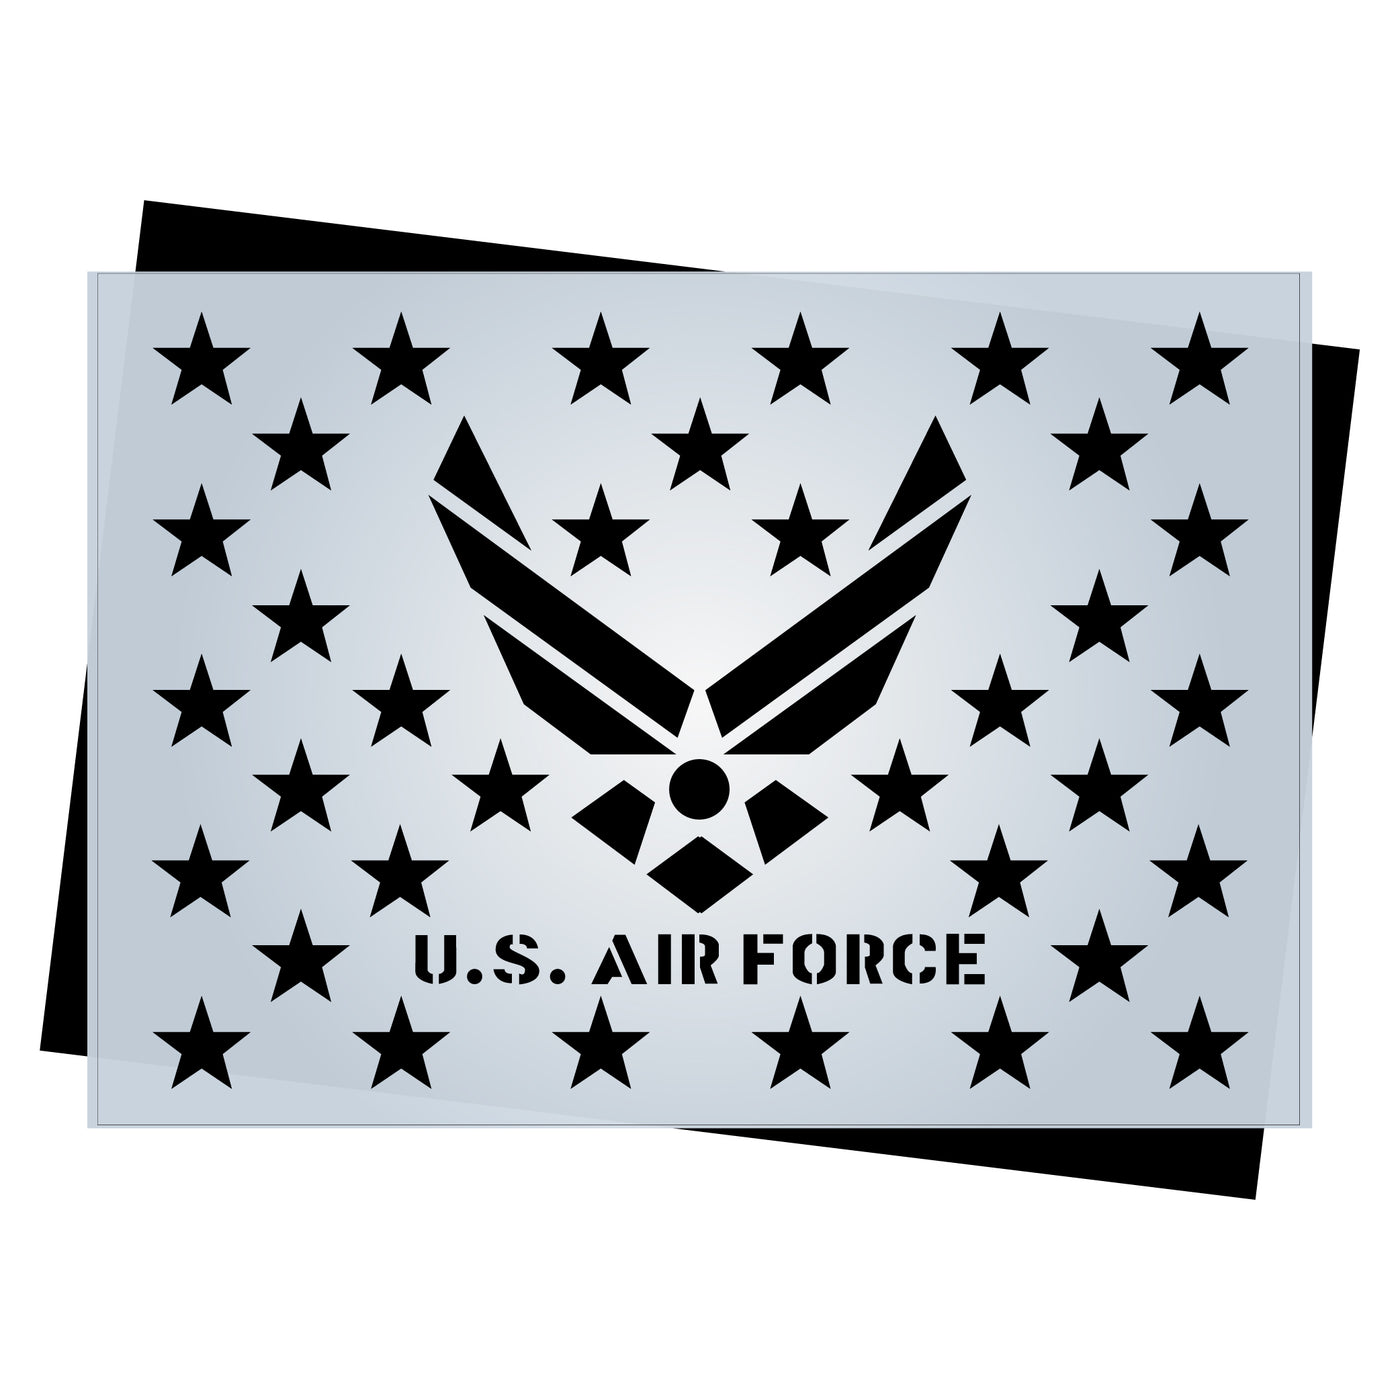 photograph relating to 50 Star Stencil Printable identified as Star Market Templates for Craftsmen of AMERICAN Picket Flags